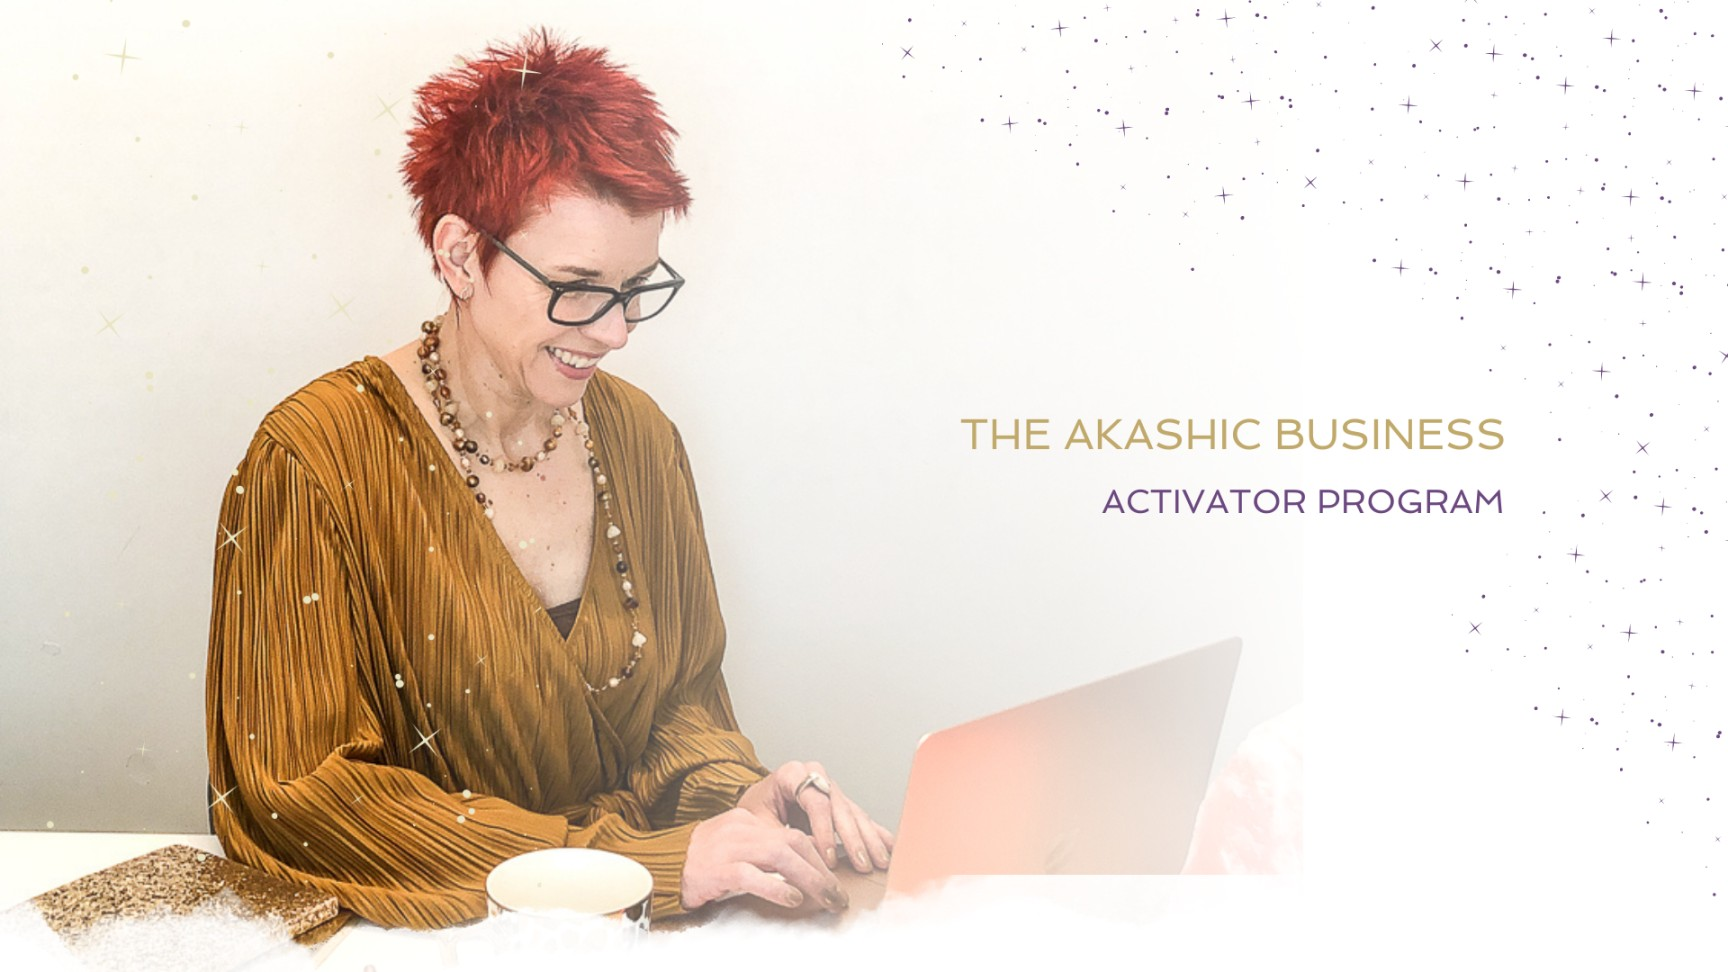 Akashic Business Activator Program